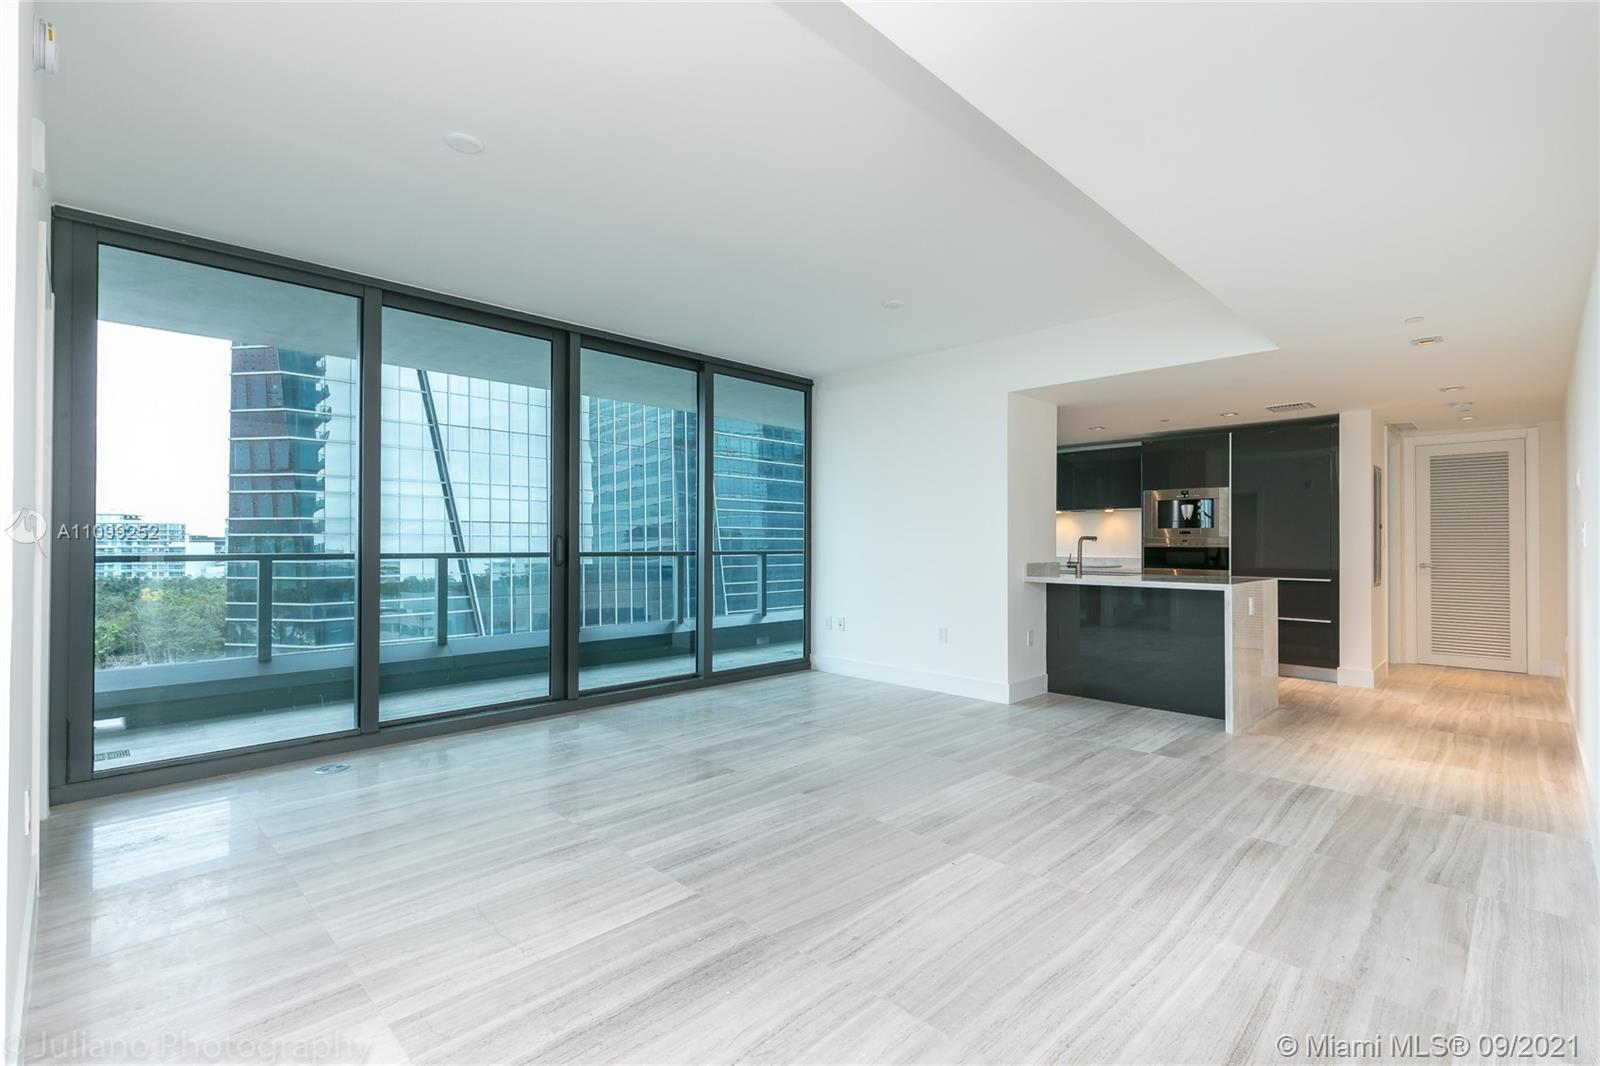 (SHOWING STARTS SEPTEMBER 23rd) TOTAL AREA 1,355 SqFt as per developer BEST PRICE IN THE BUILDING Th